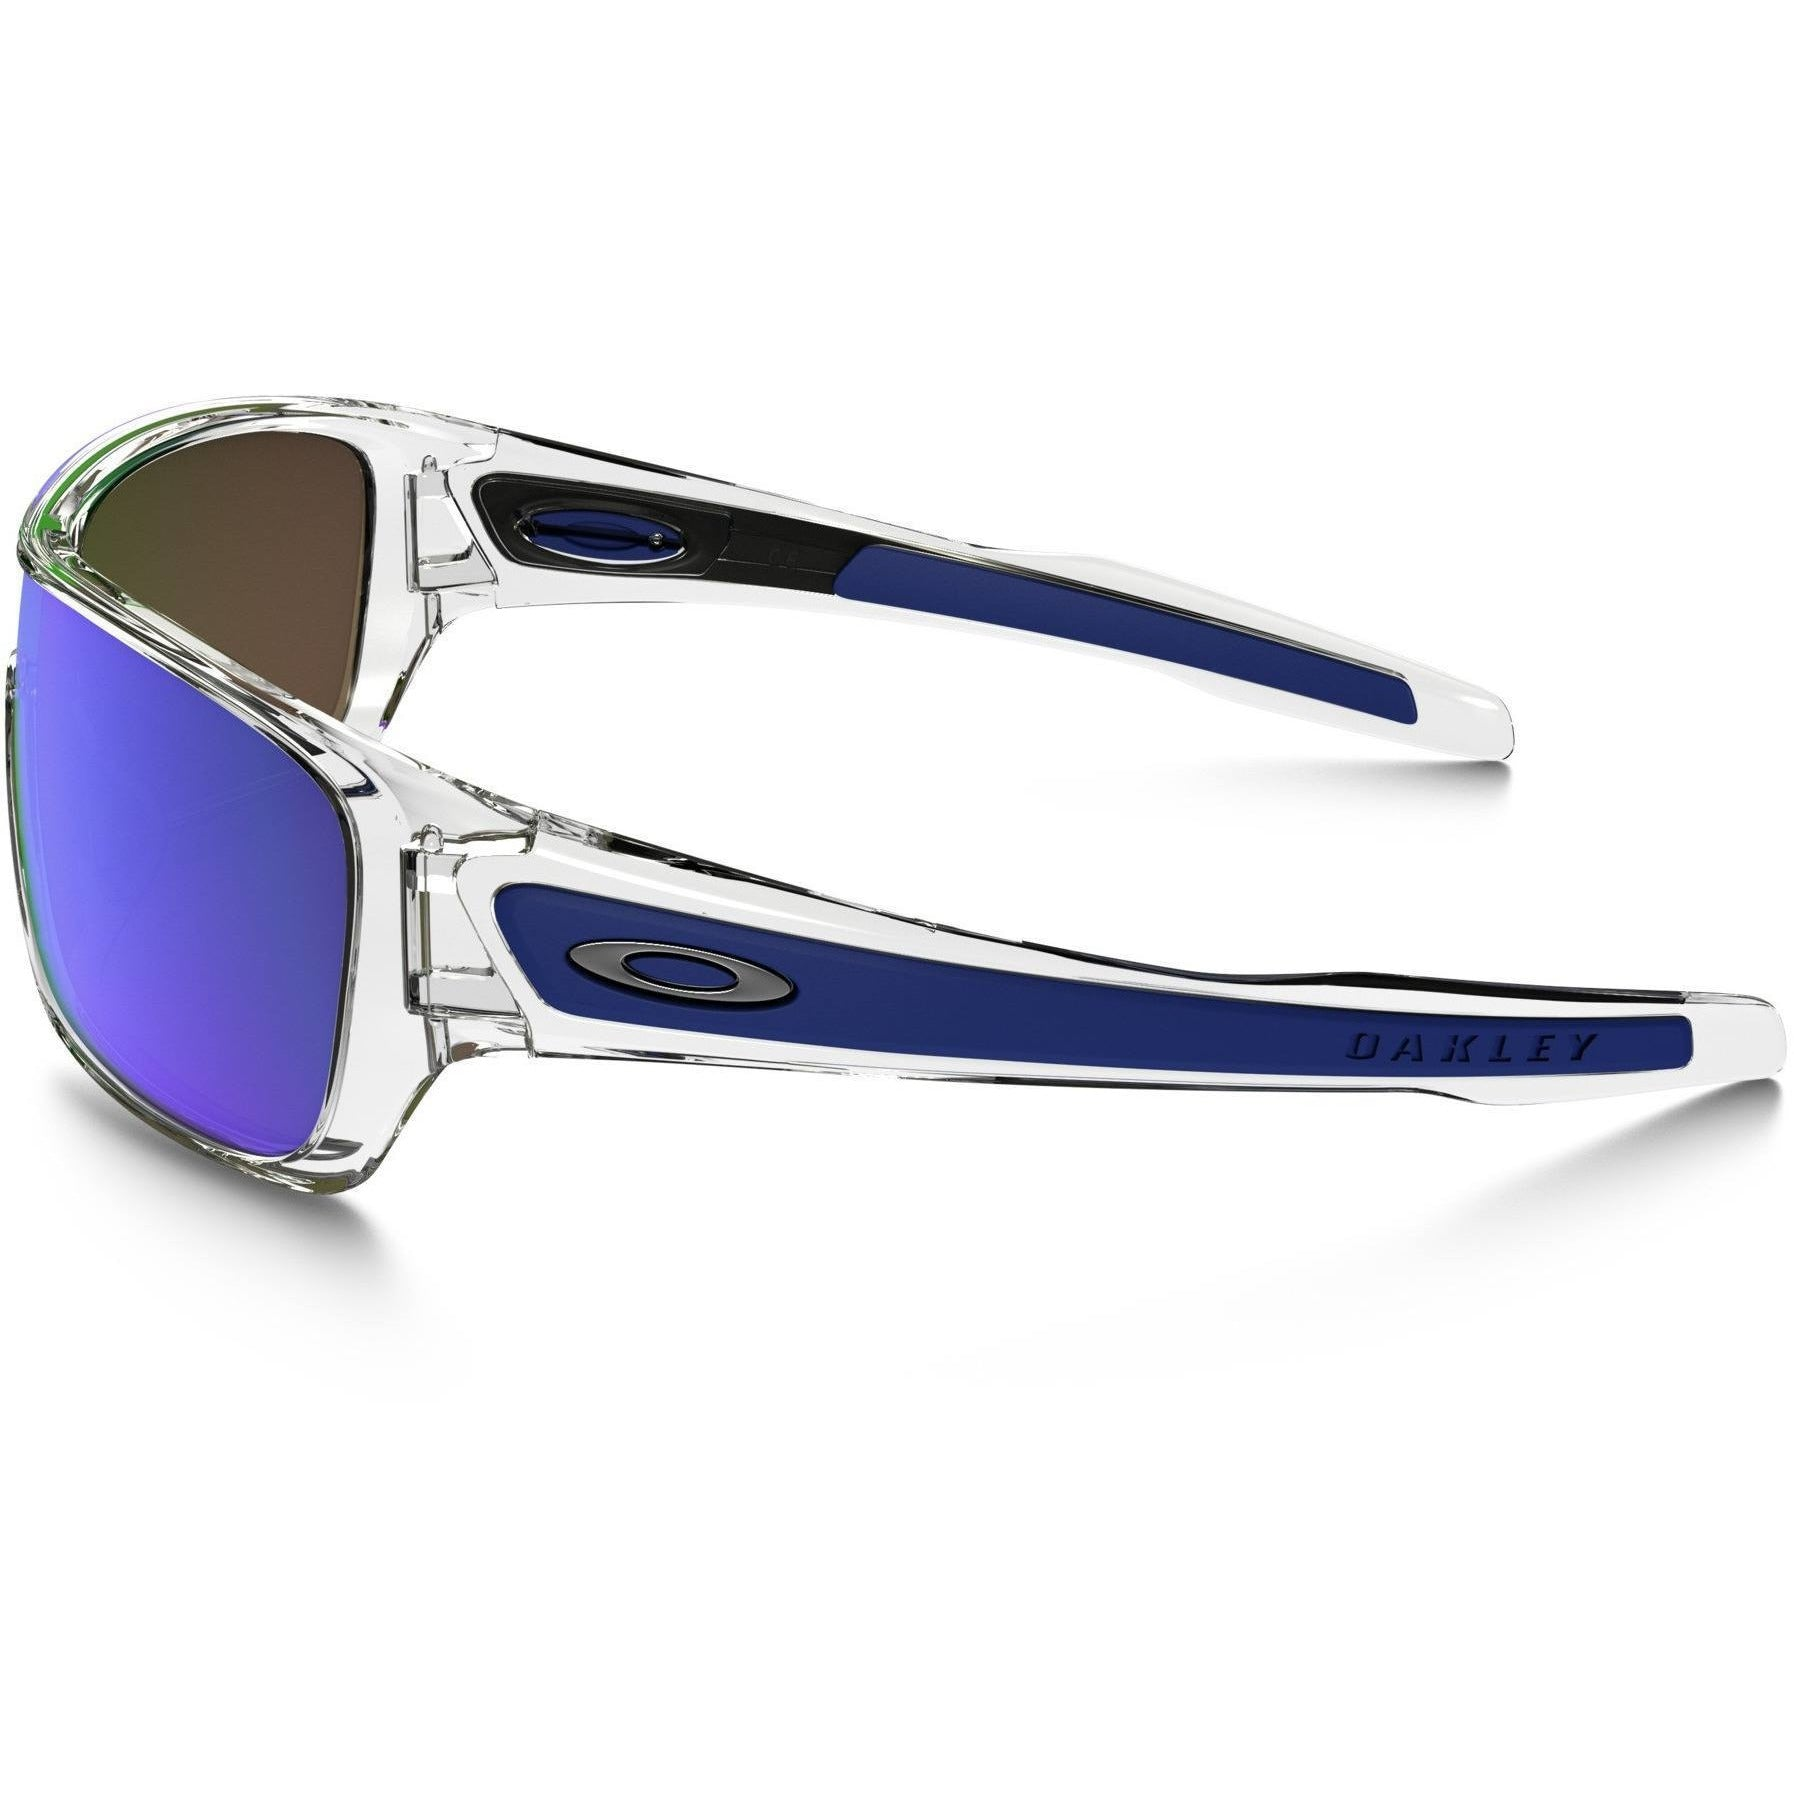 Oakley Turbine Rotor Sunglasses - 88 Gear